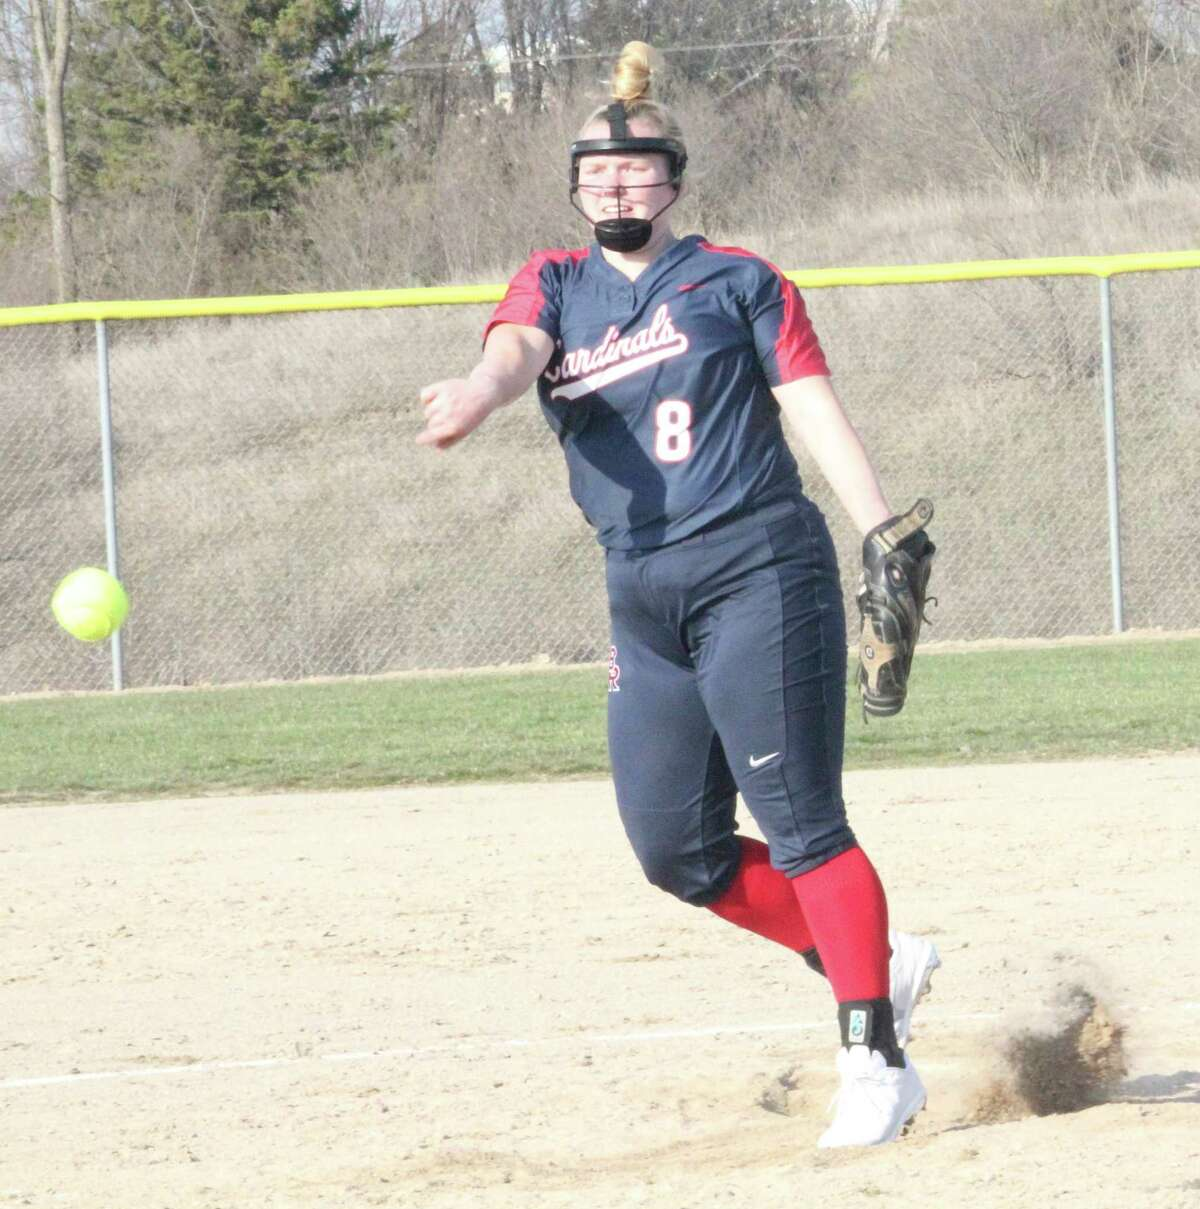 Big Rapids' Alissa Ruggles fires a pitch against Morley Stanwood on Tuesday. (Pioneer photo/John Raffel)